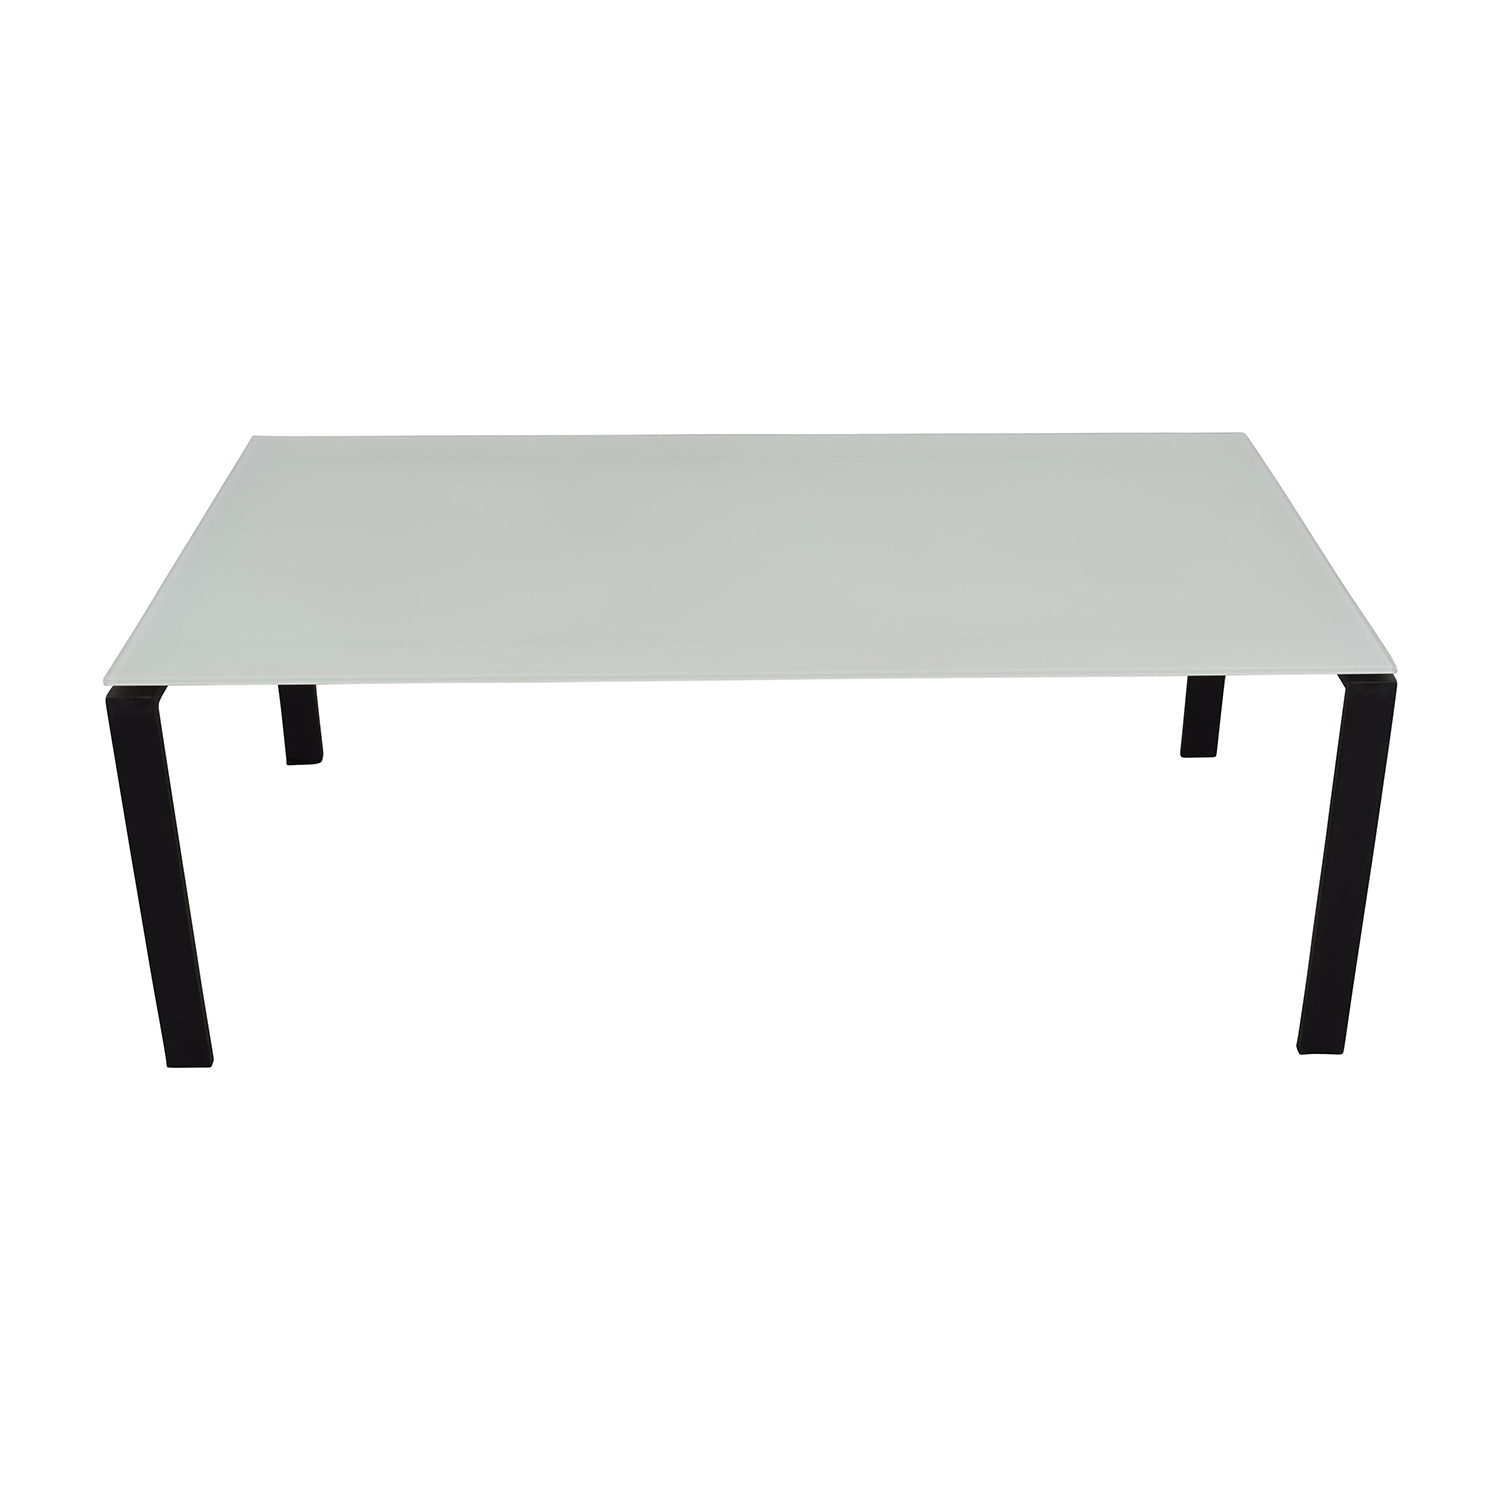 Room & Board Room & Board Rand Table in Natural Steel translucent